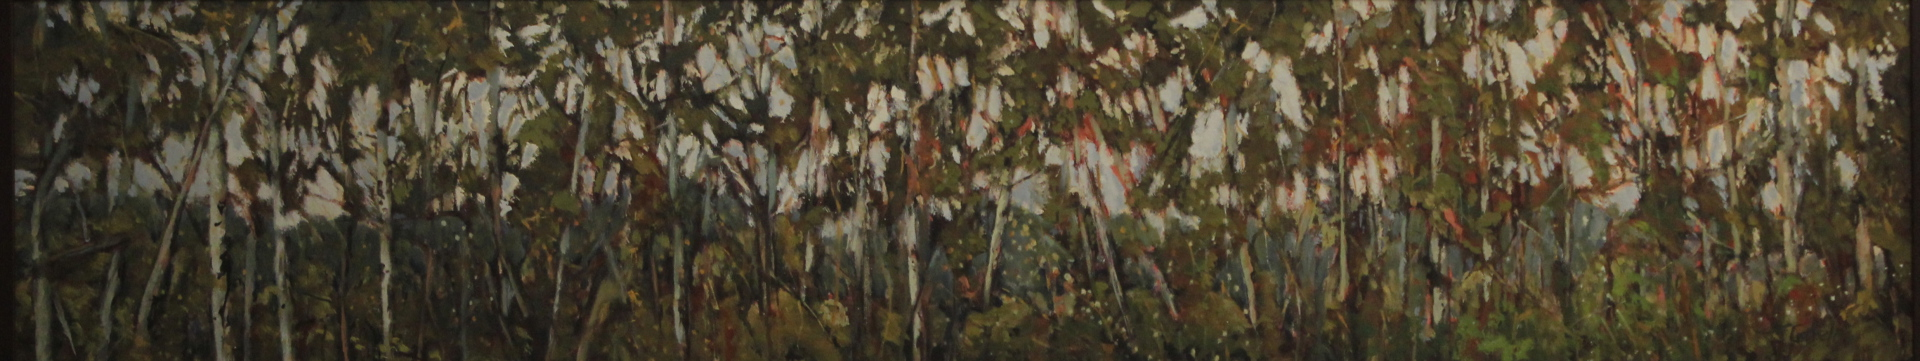 THE FARMERS FIELD - 12X48 - OIL ON PANEL - 2009